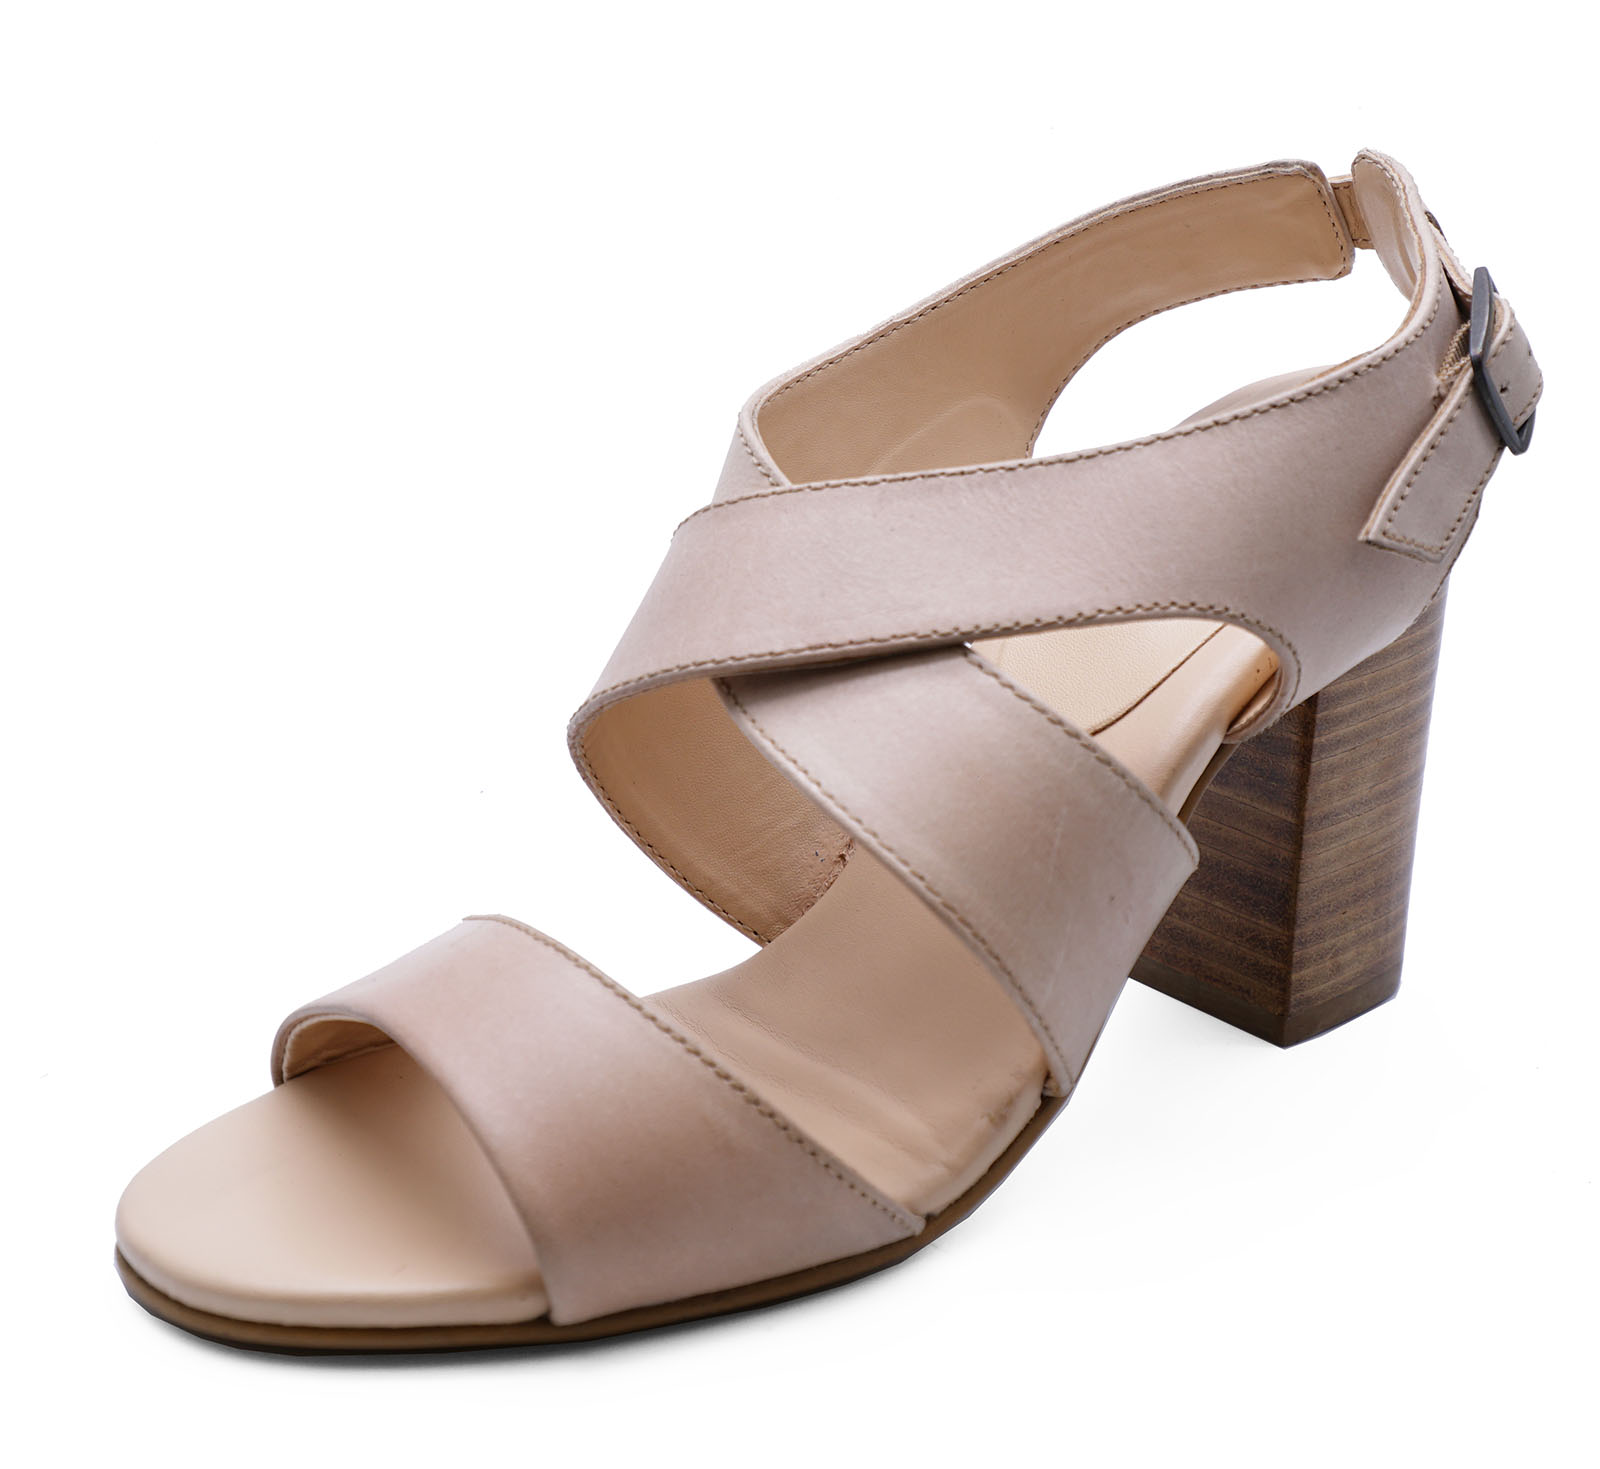 86faf79fac8631 Sentinel WOMENS GENUINE LEATHER NUDE OPEN-TOE SANDALS ELEGANT STRAPPY SHOES  SIZES 3-8